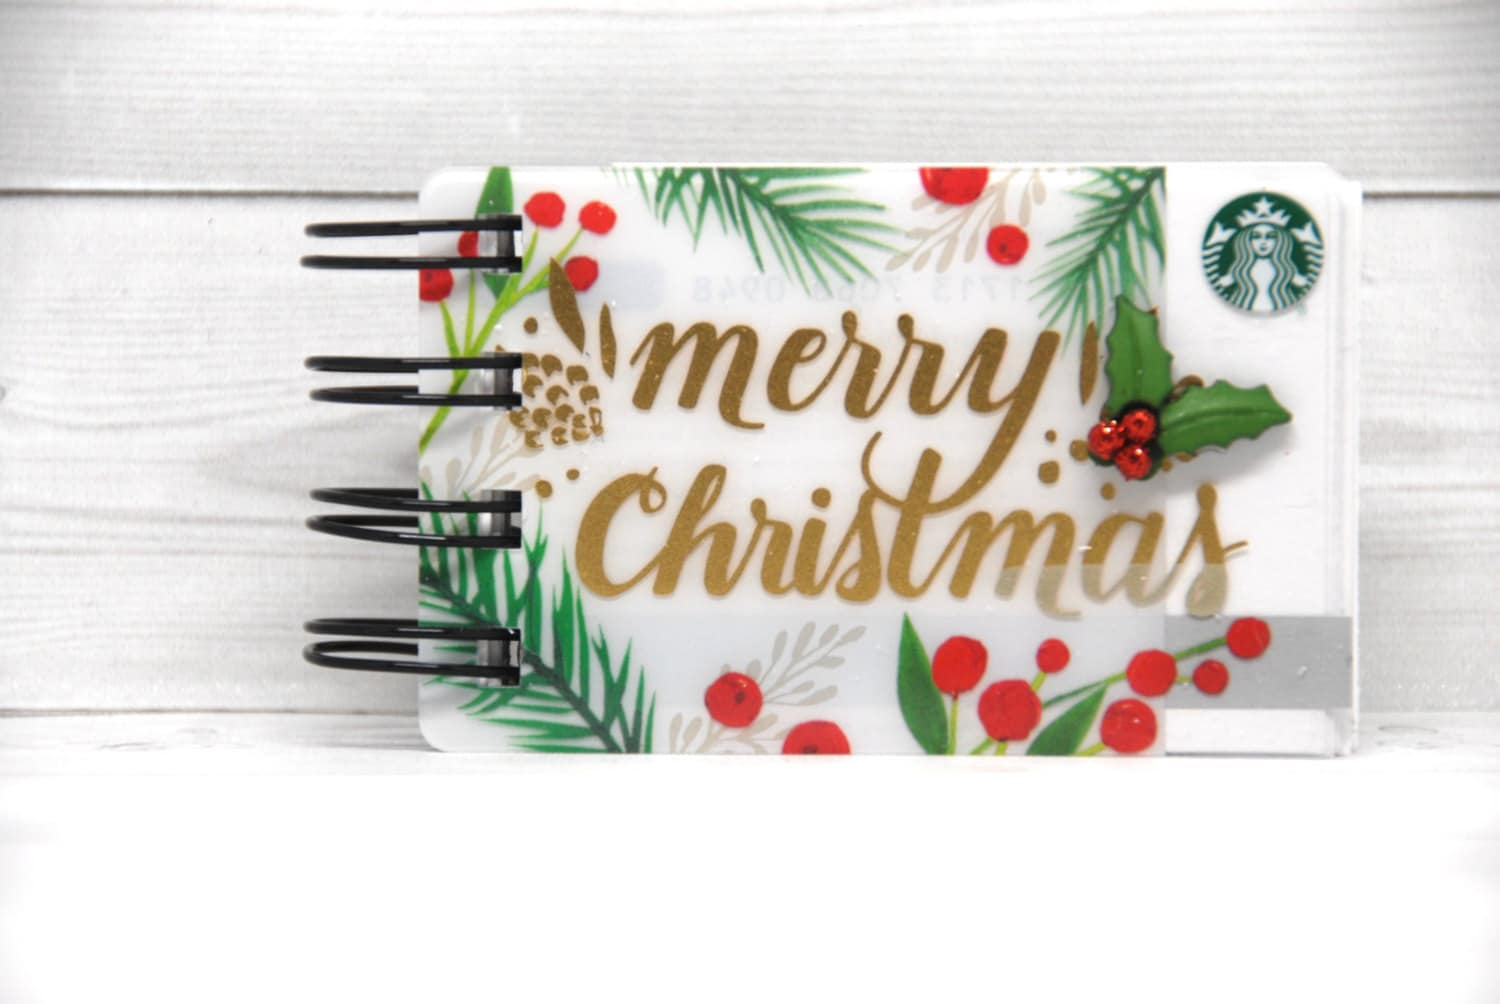 STARBUCKS HOLIDAY CHRISTMAS Notebook with gift card covers